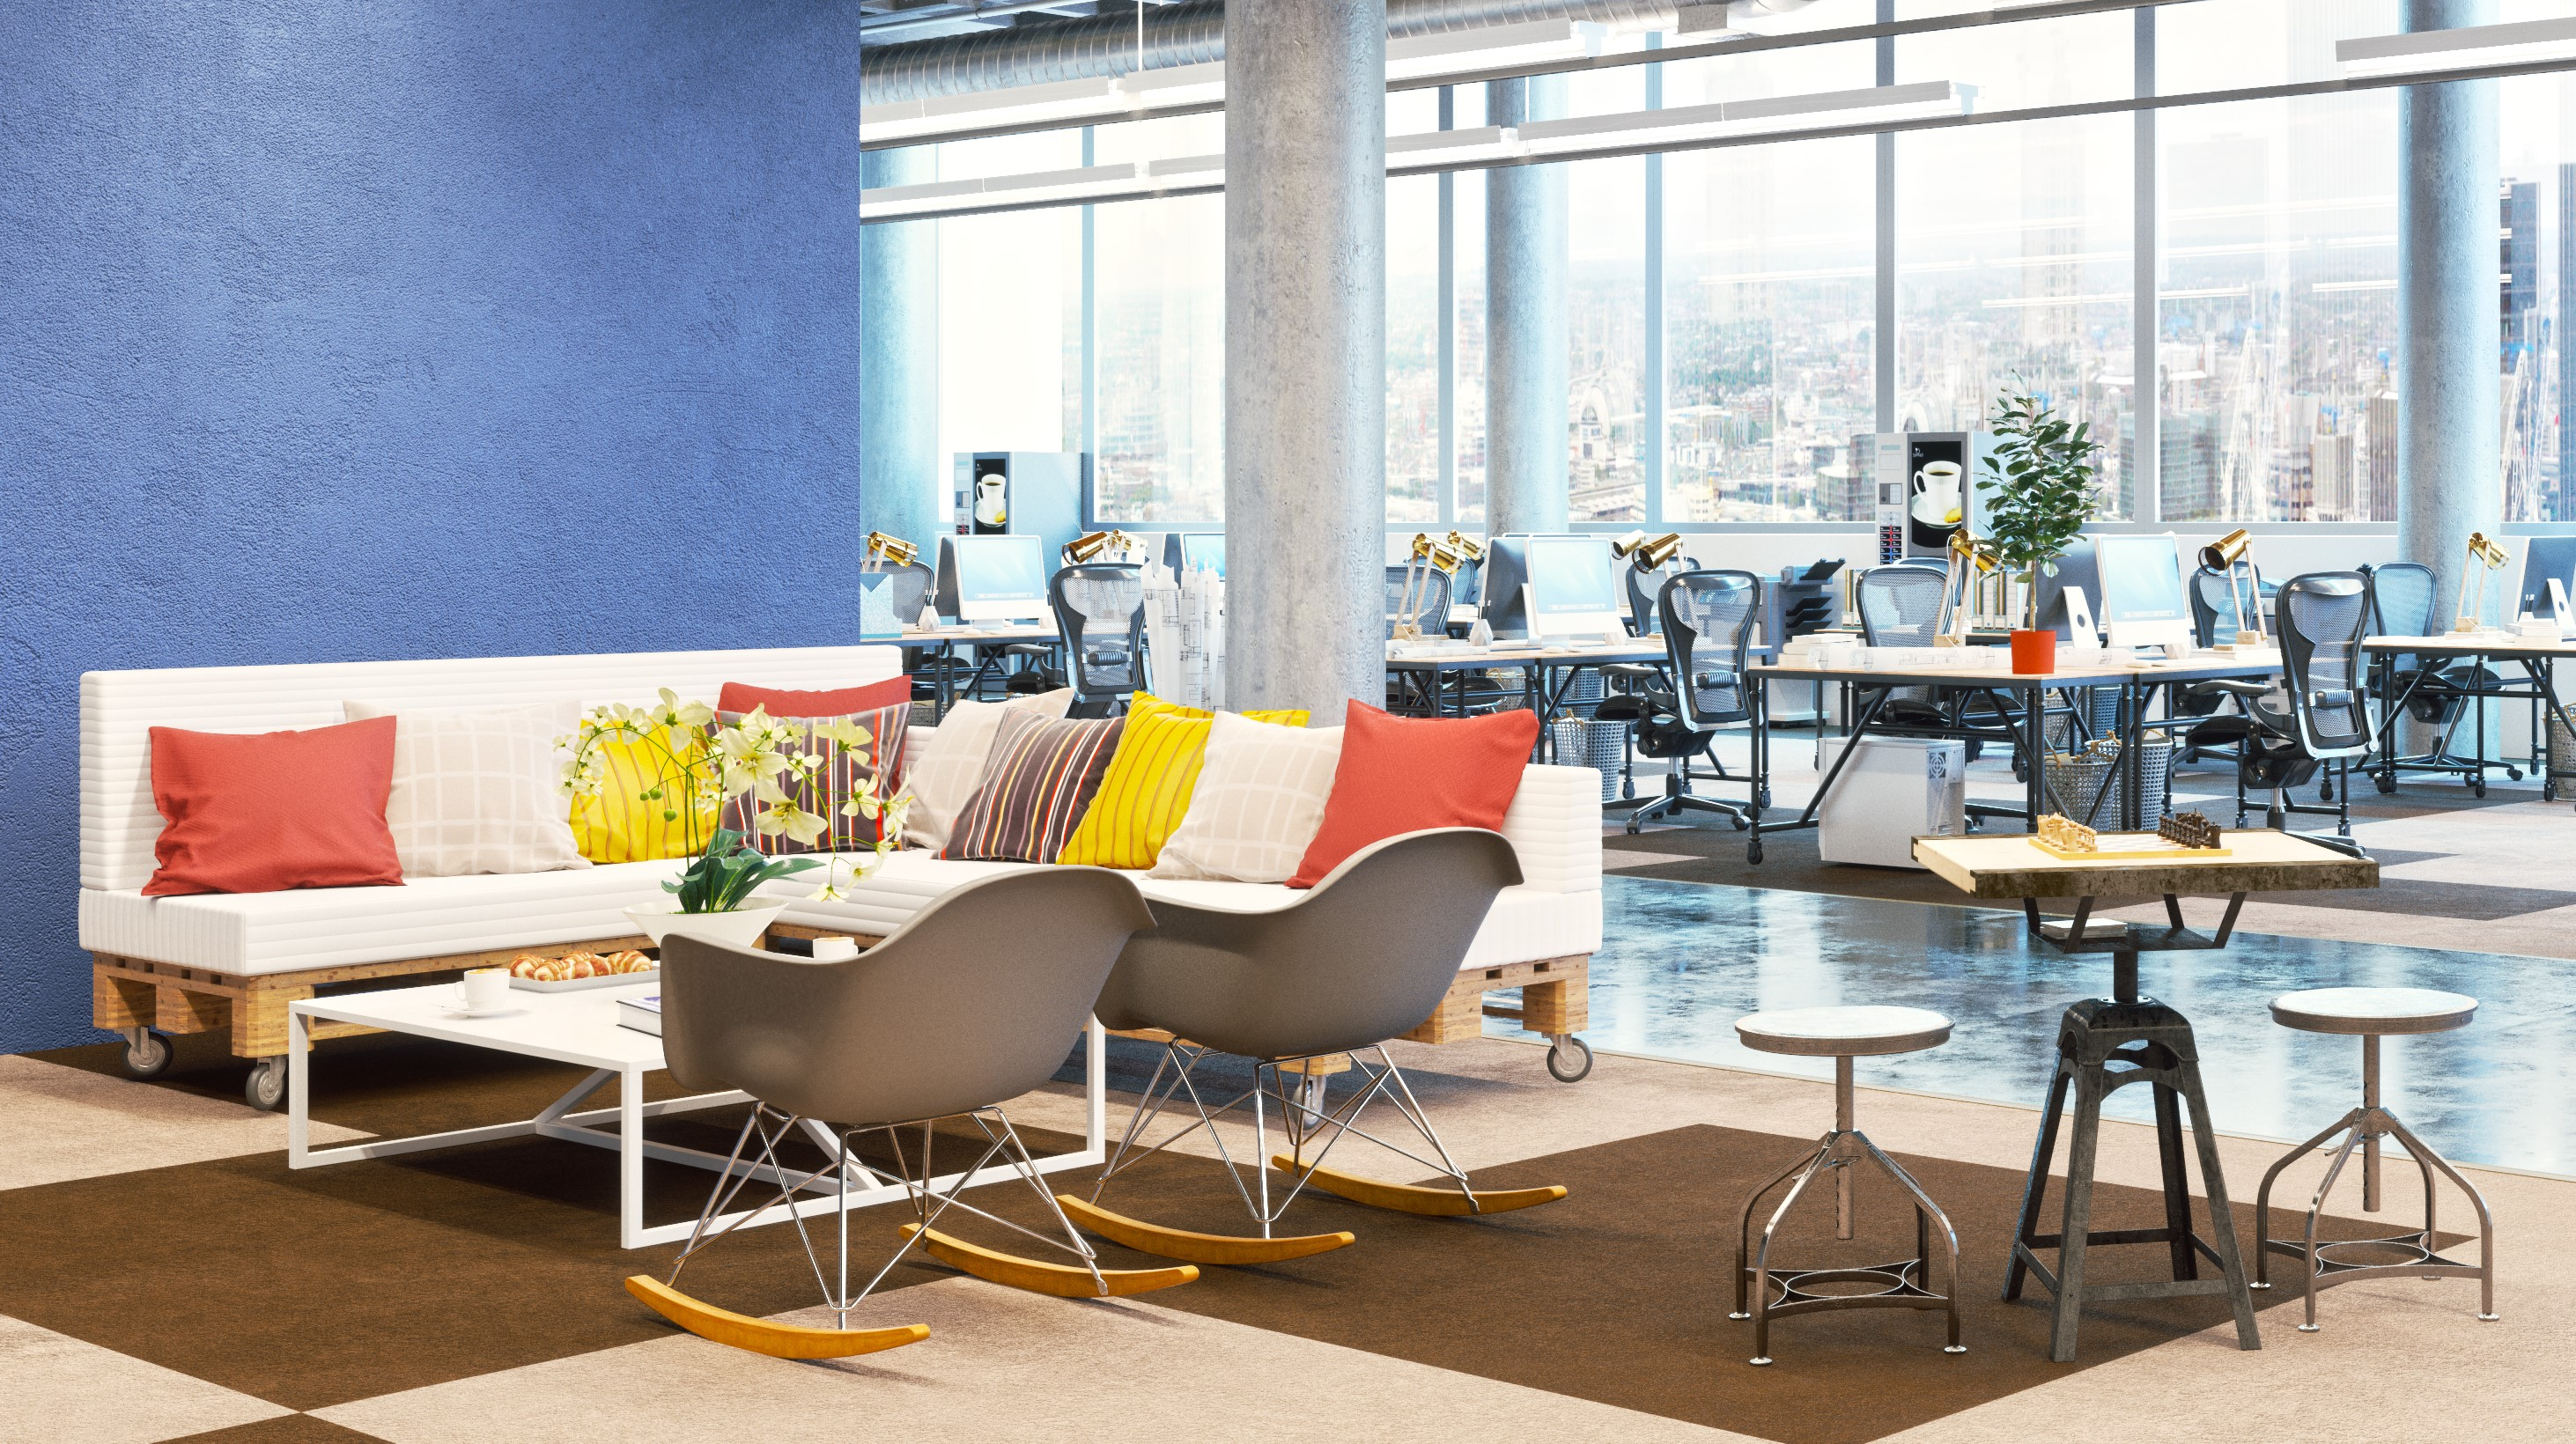 Colour can add dynamics to your office – check it out here!